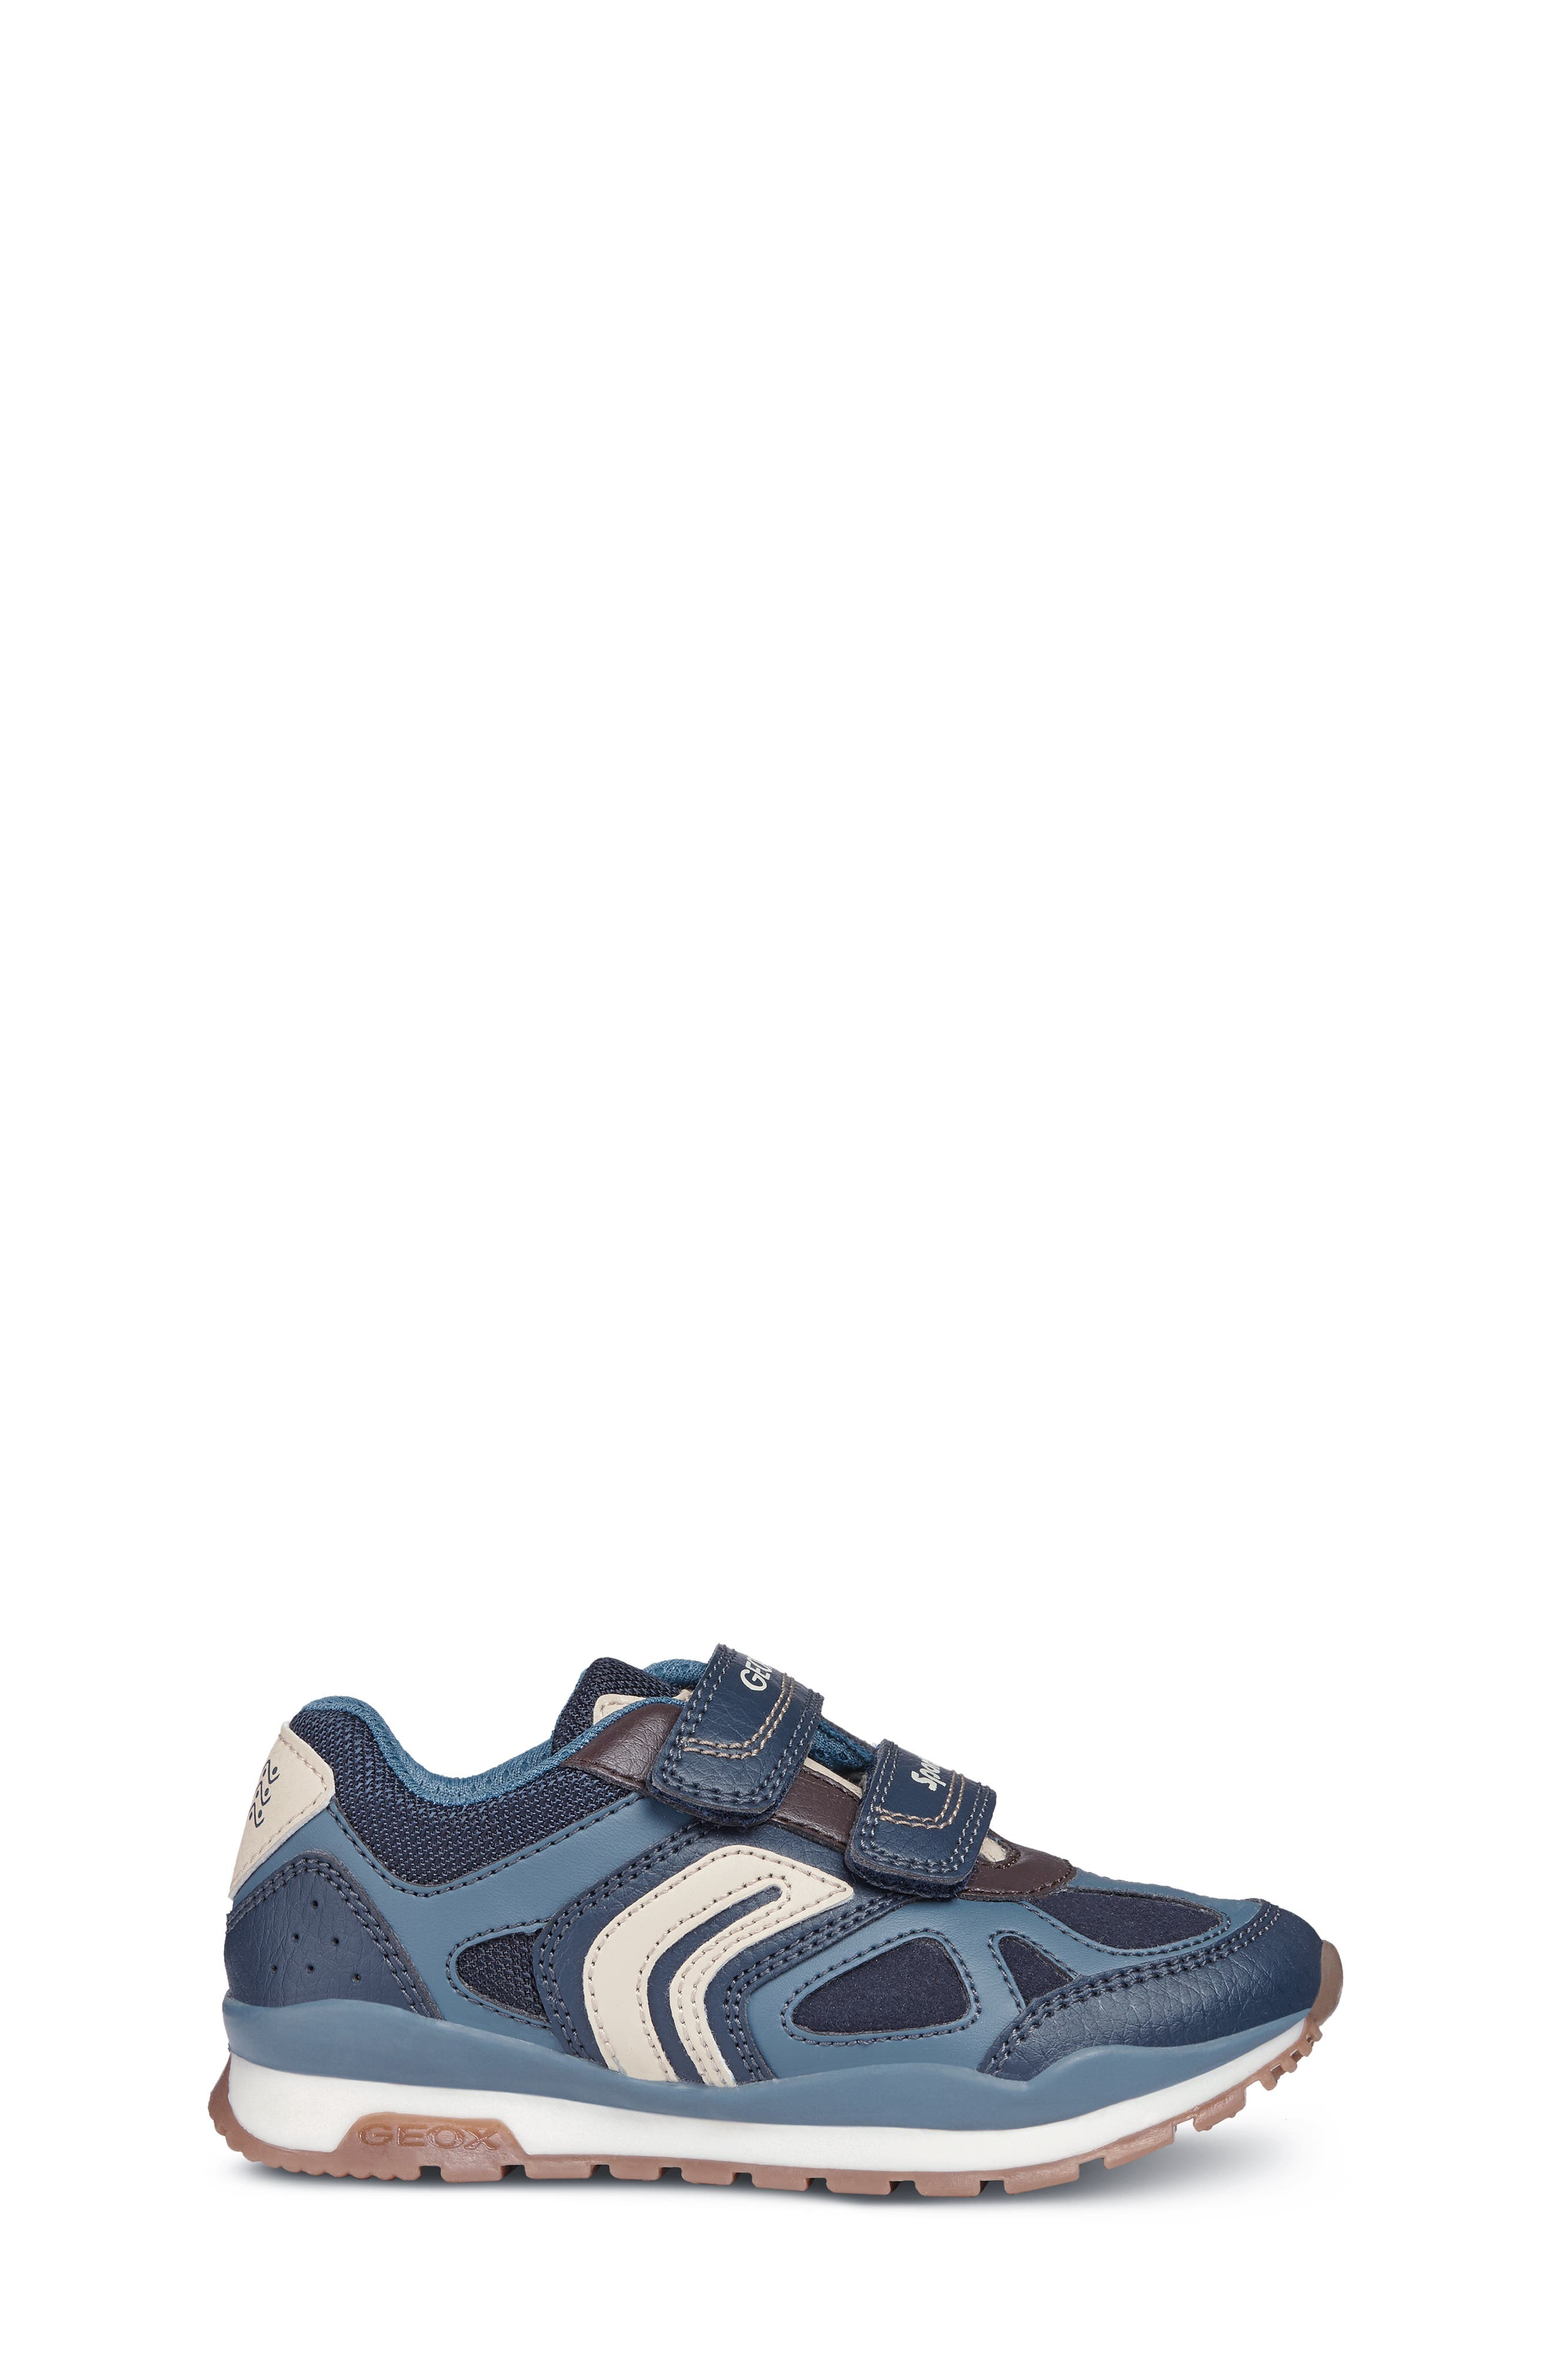 Pavel Sneaker,                             Alternate thumbnail 3, color,                             Navy/Avio